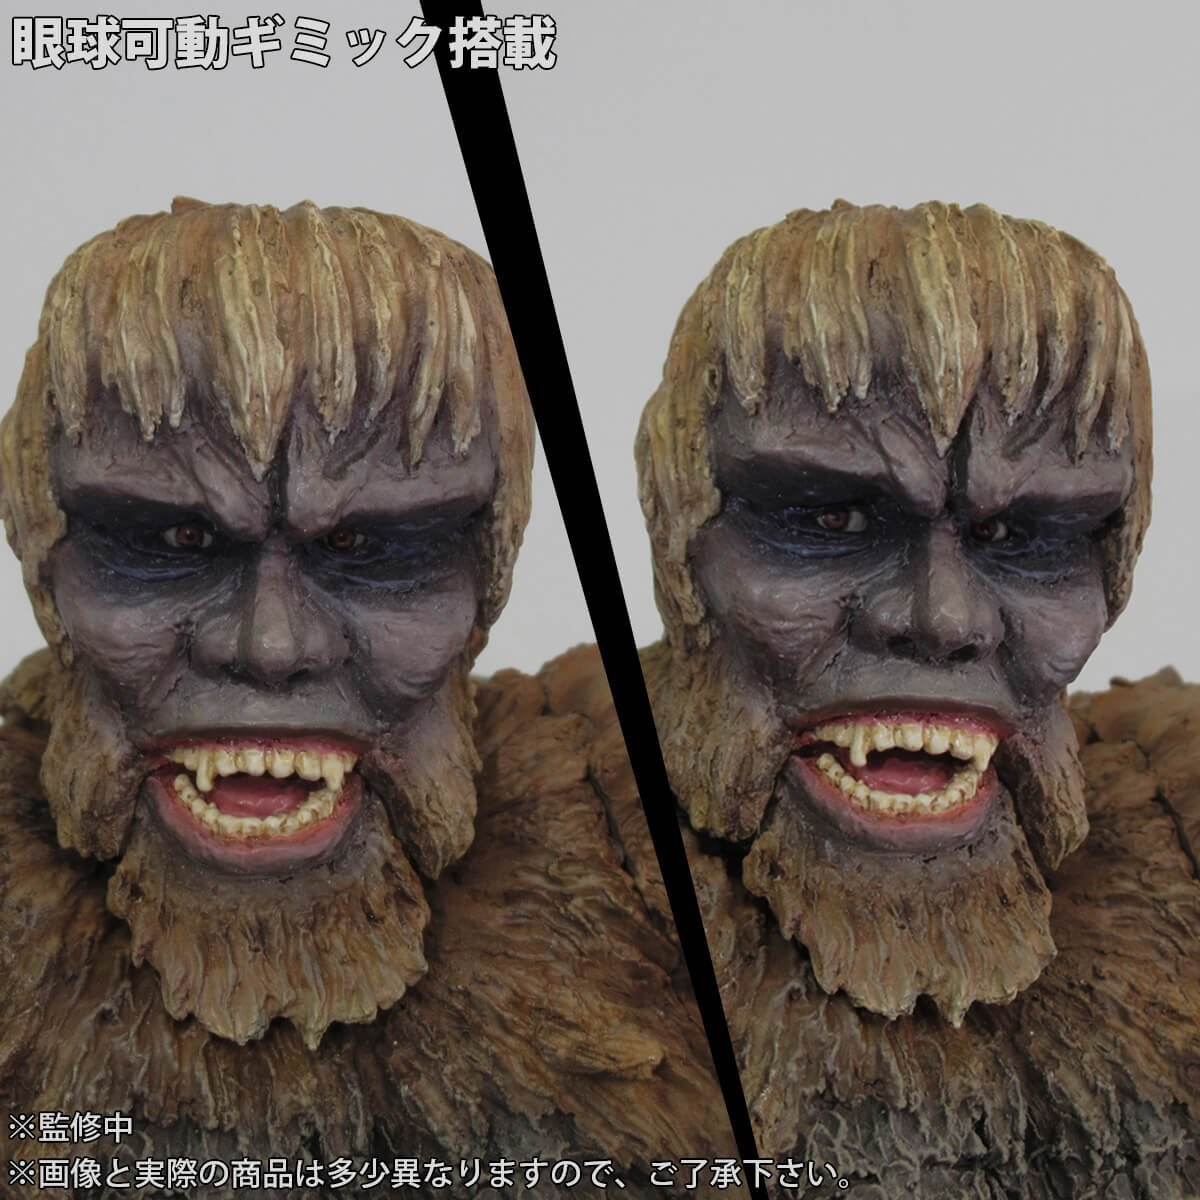 Toho Large Monster Series Sanda vs. Guyra Shonen Rick Limited Edition 14